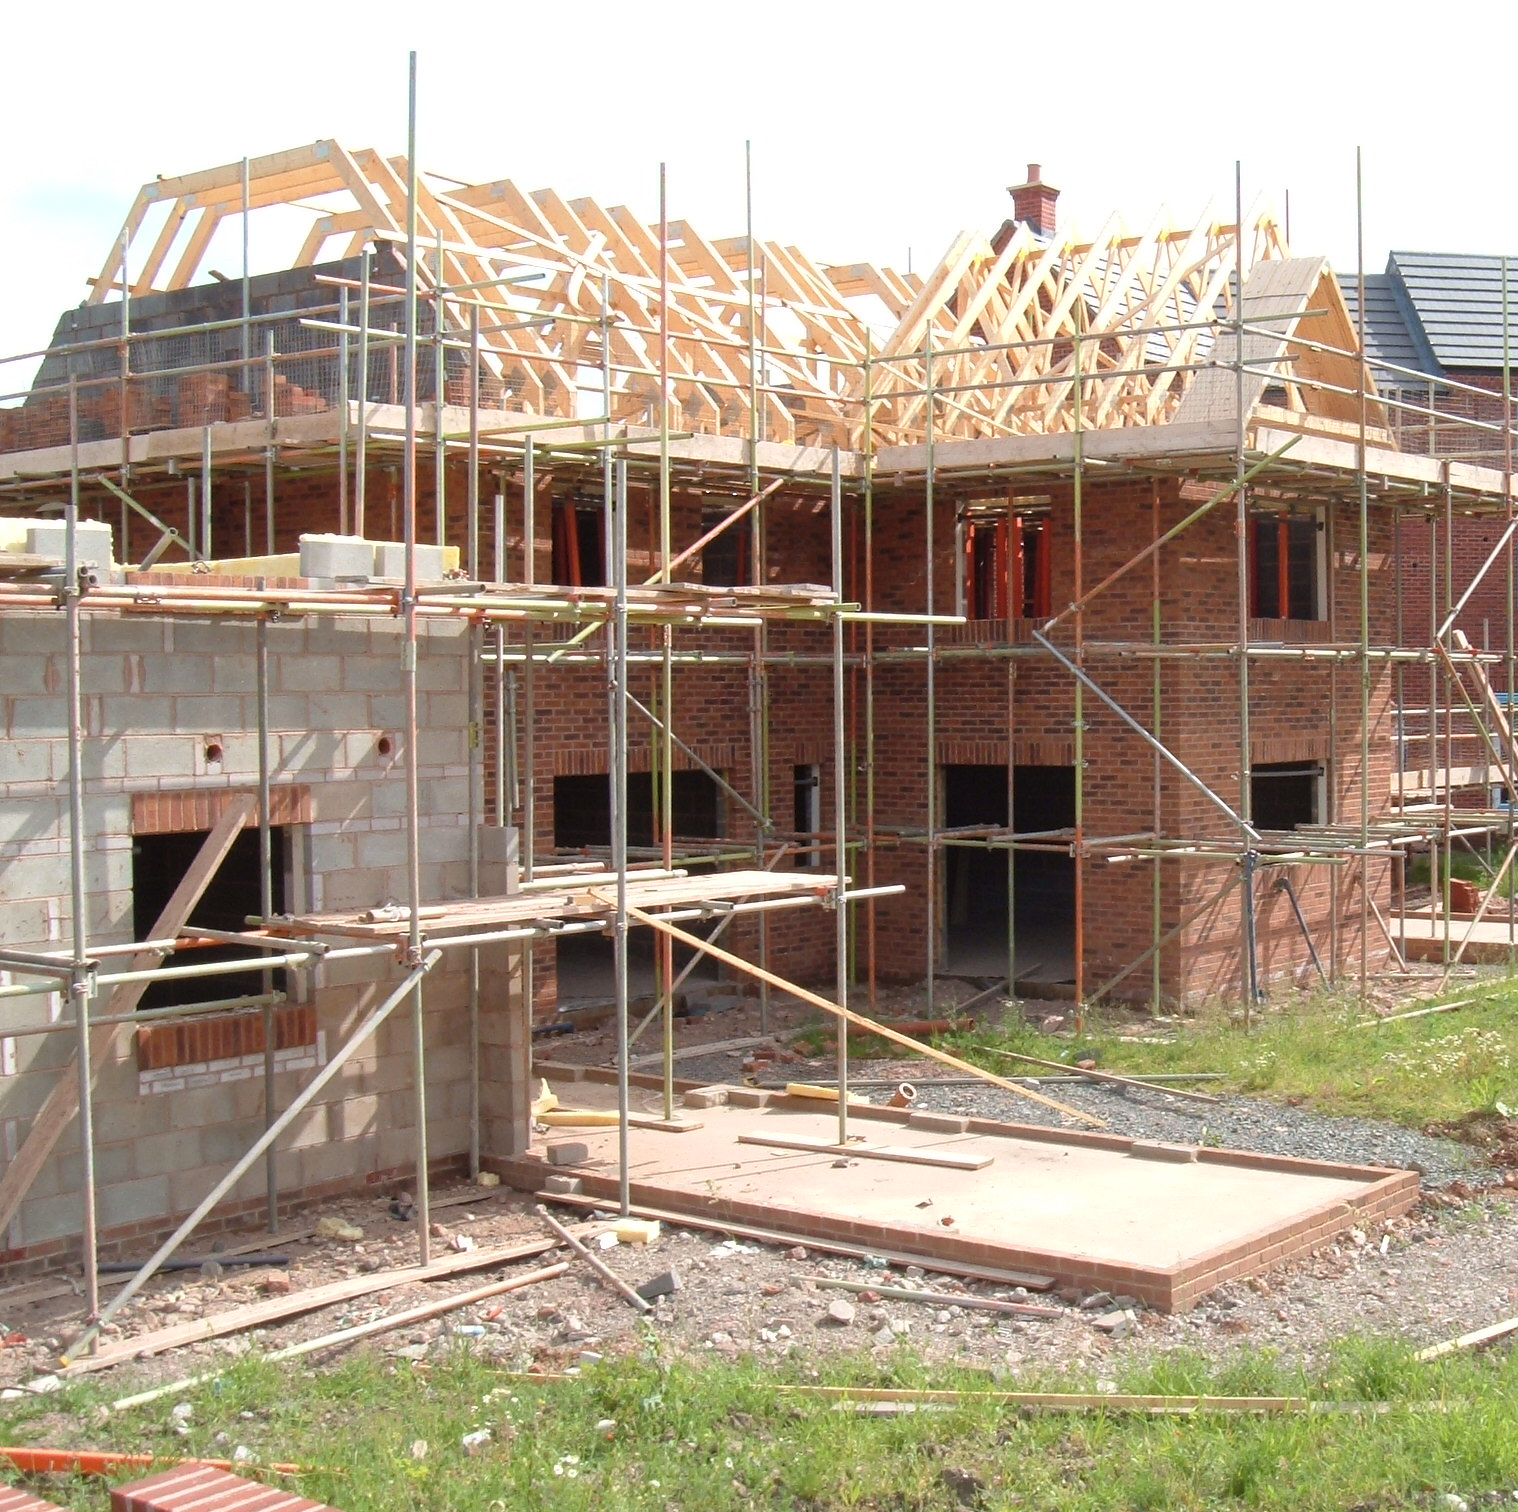 Private Sector Drives Growth Across Uk Building Sector